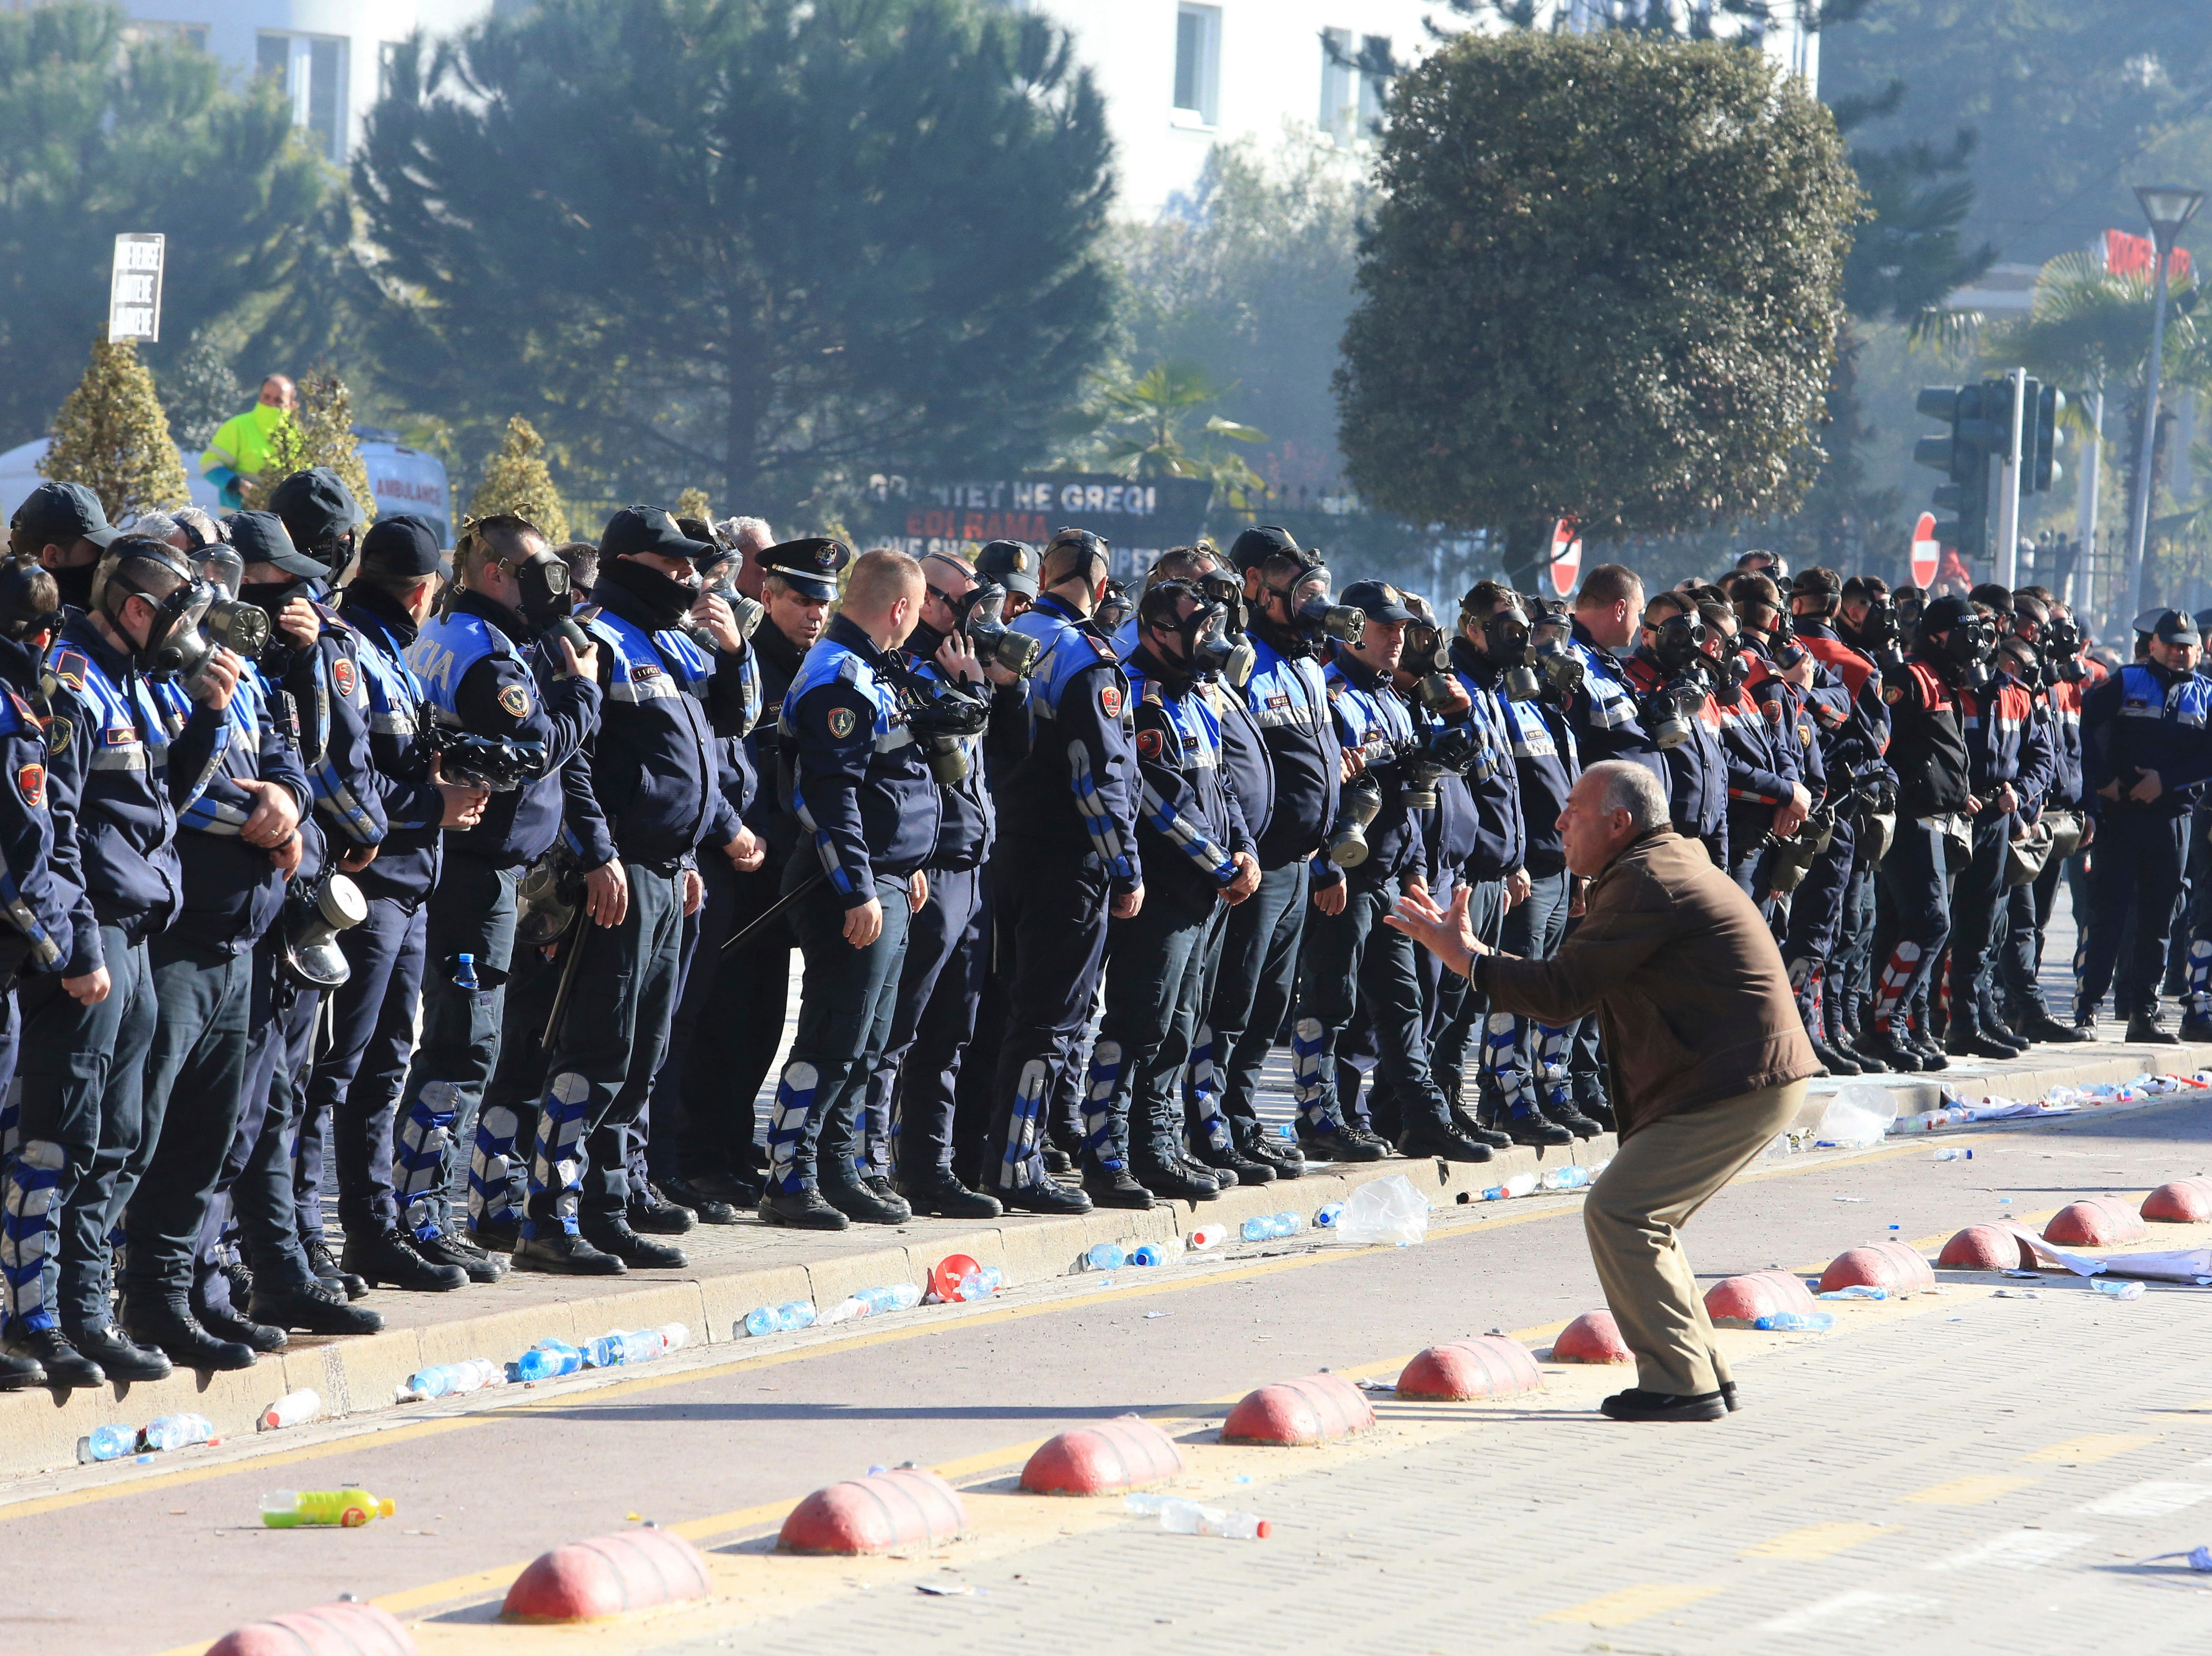 An opposition supporter shouts at police officers during an anti-government rally outside the prime minister's office in the capital Tirana, Albania, Saturday, Feb.16, 2019. Thousands of Albanian opposition supporters have clashed with police in an anti-government rally to protest what they say is a corrupt and inefficient Cabinet, asking for its resignation and early elections.